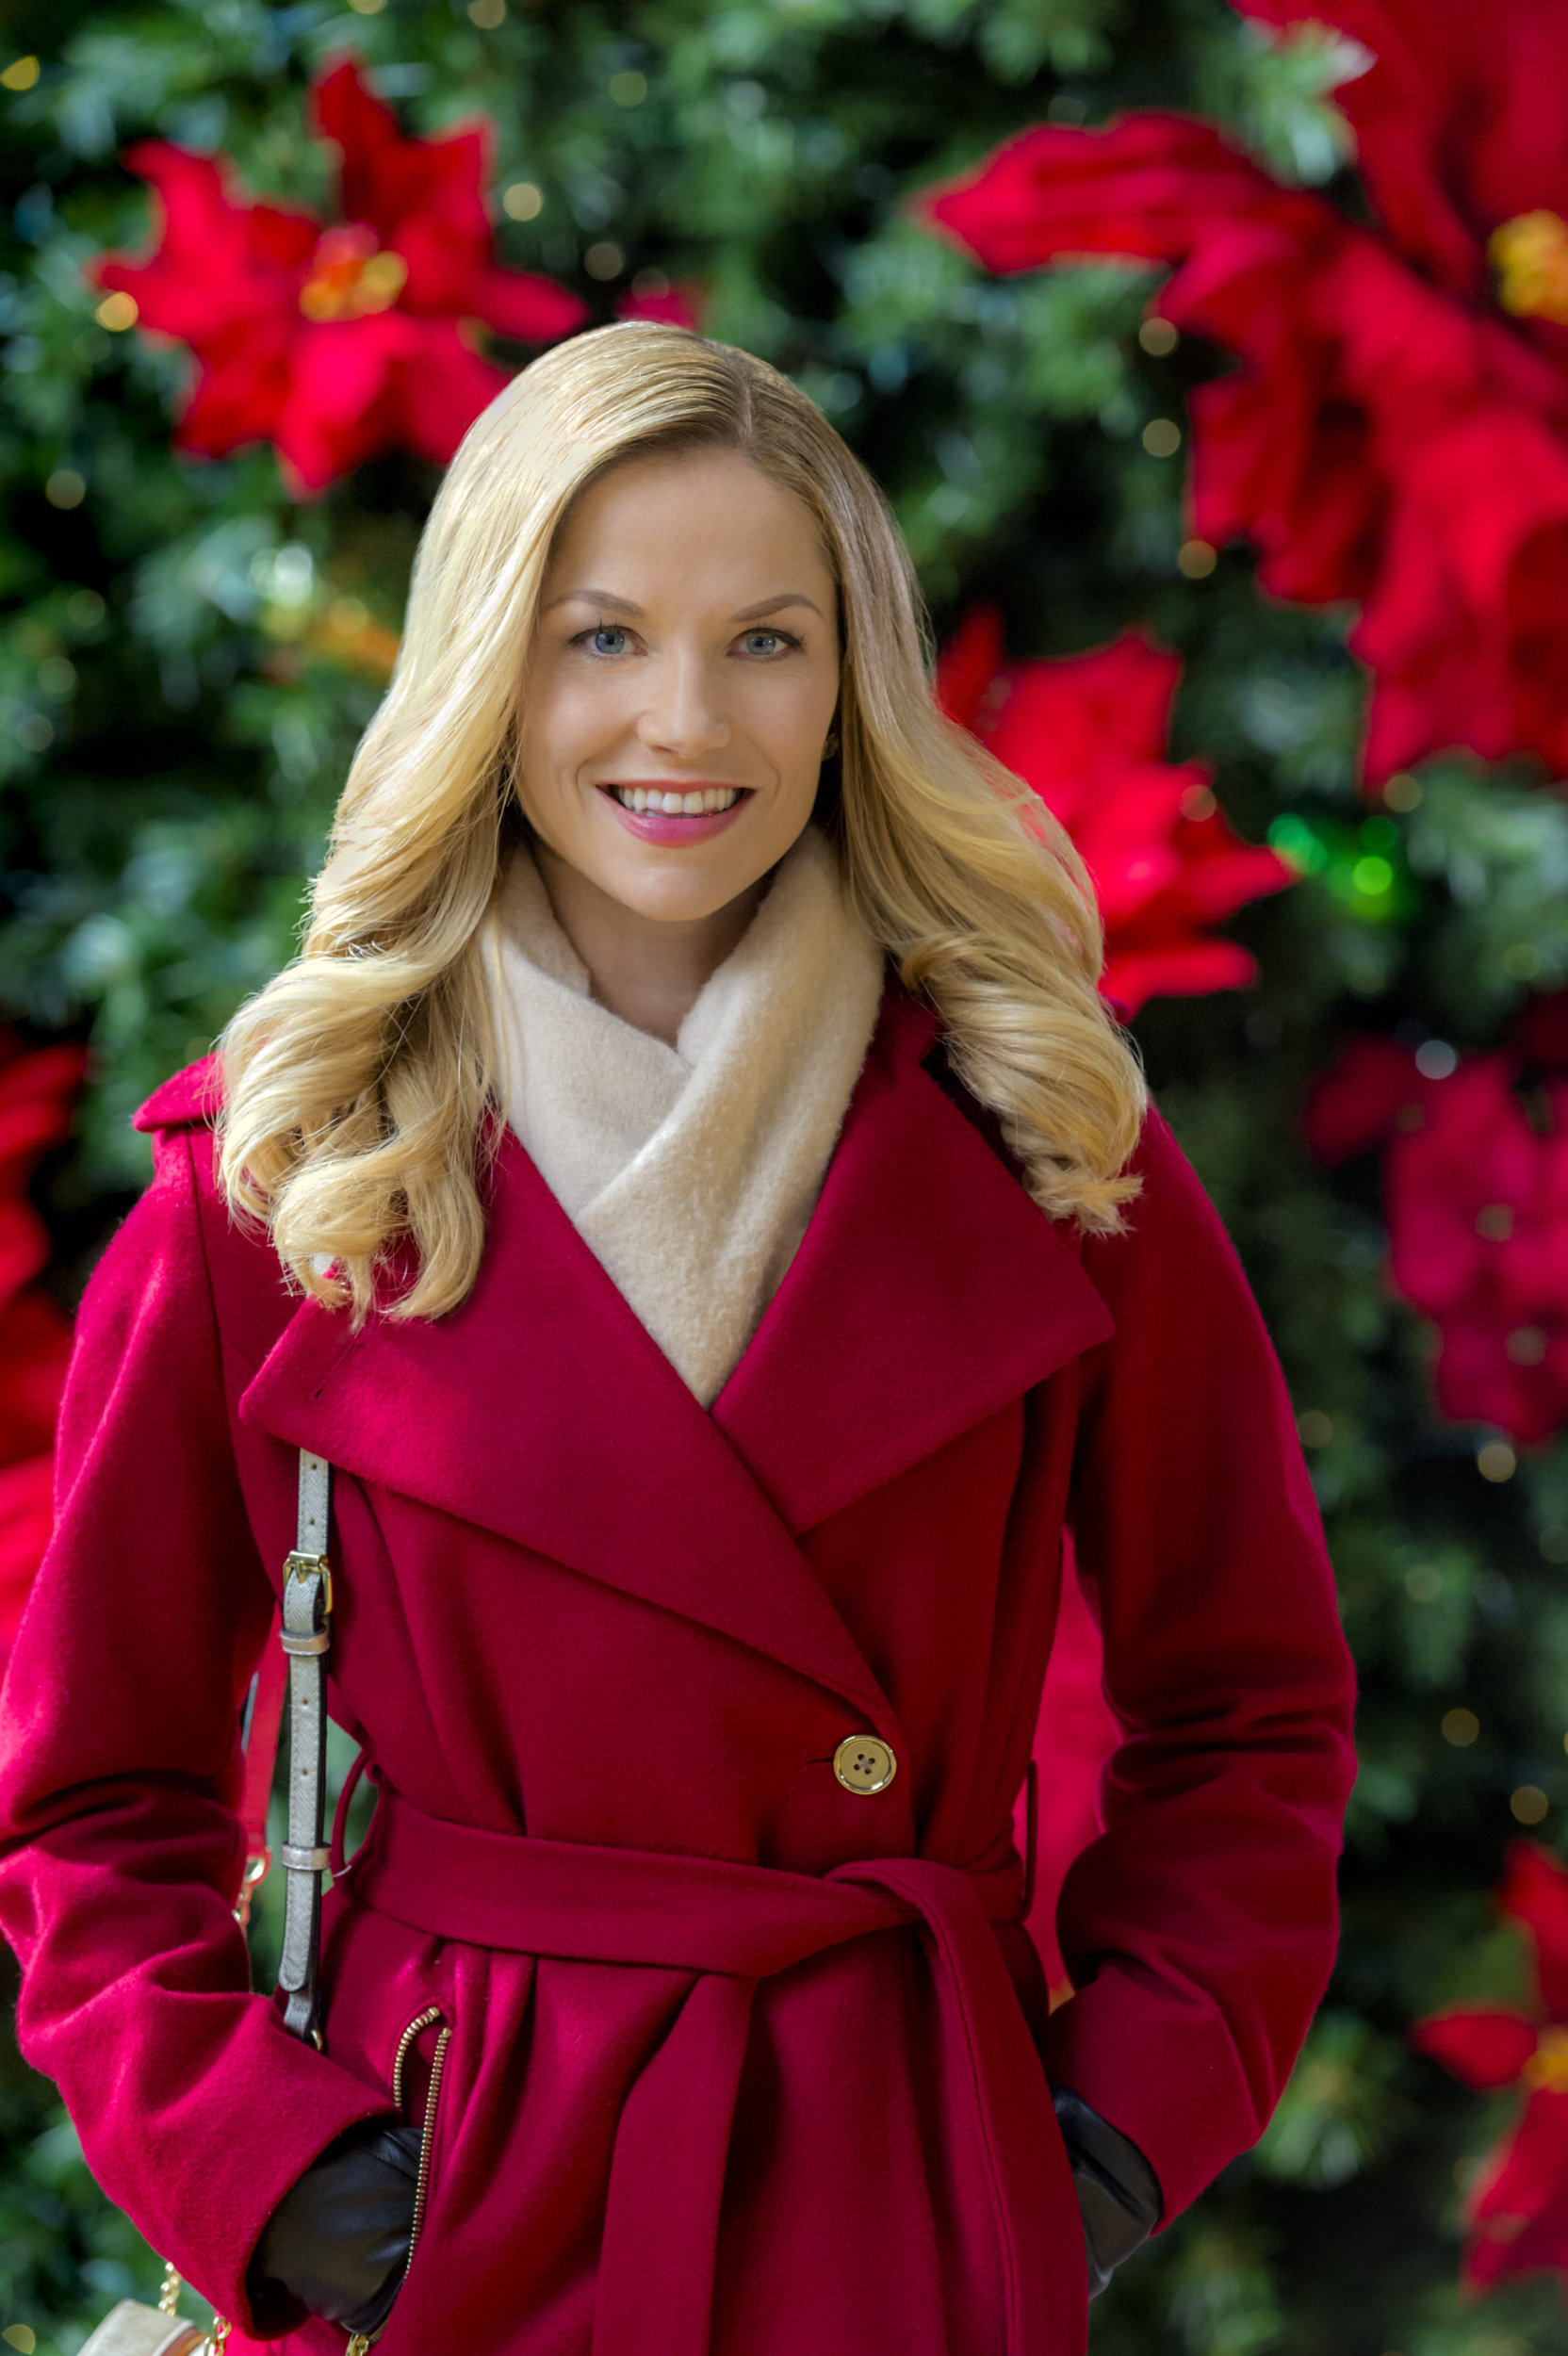 Sharing Christmas Hallmark.Ellen Hollman On Sharing Christmas Hallmark Channel